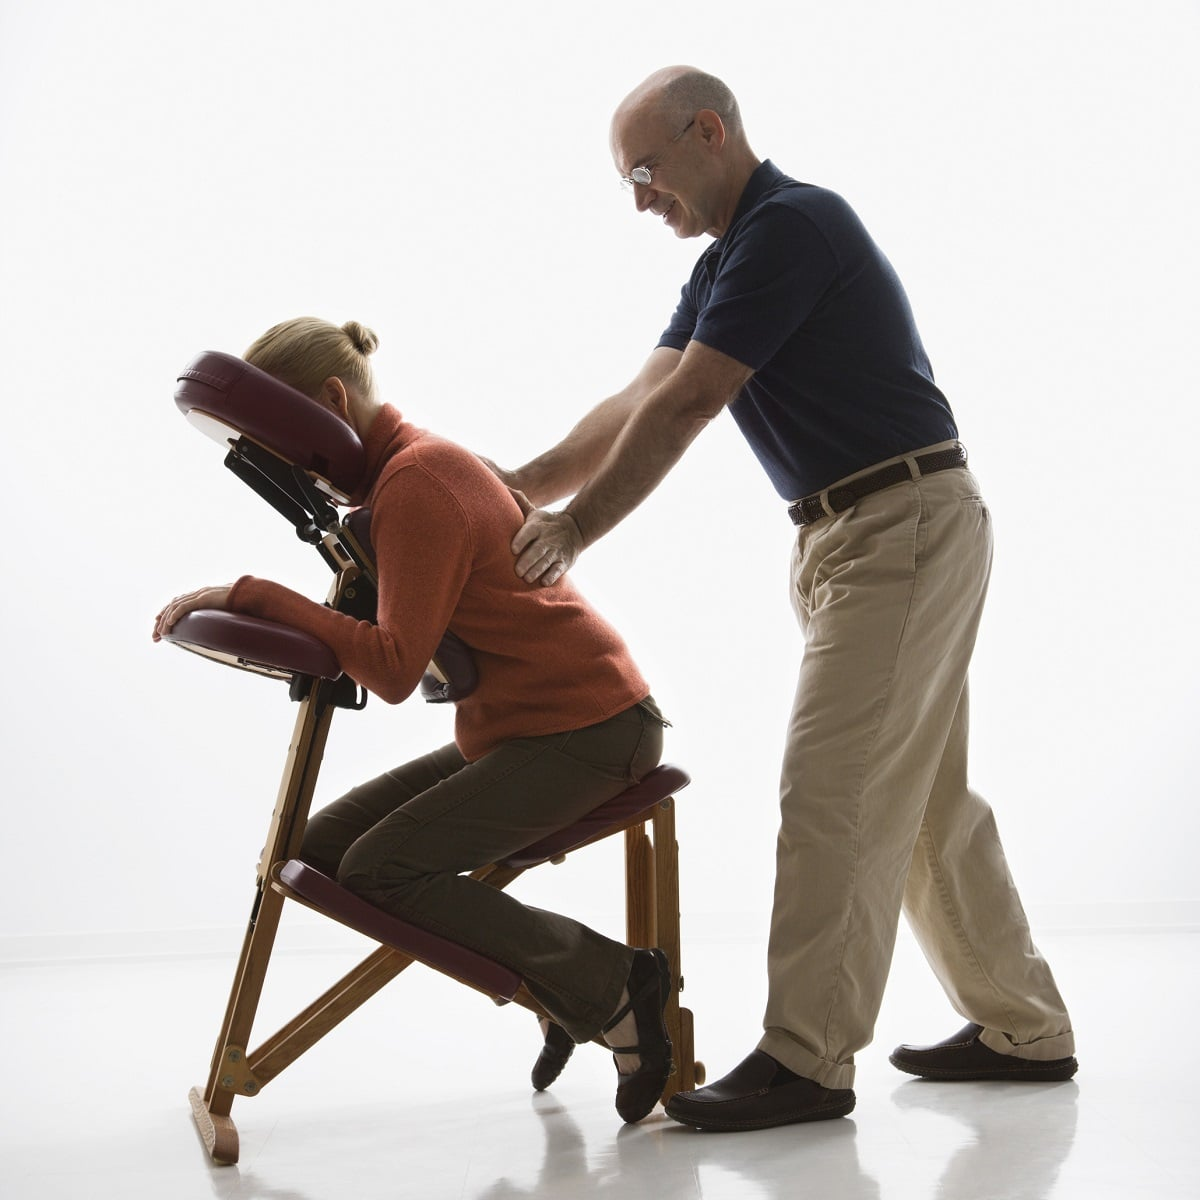 benefits of a chair massage in the workplace